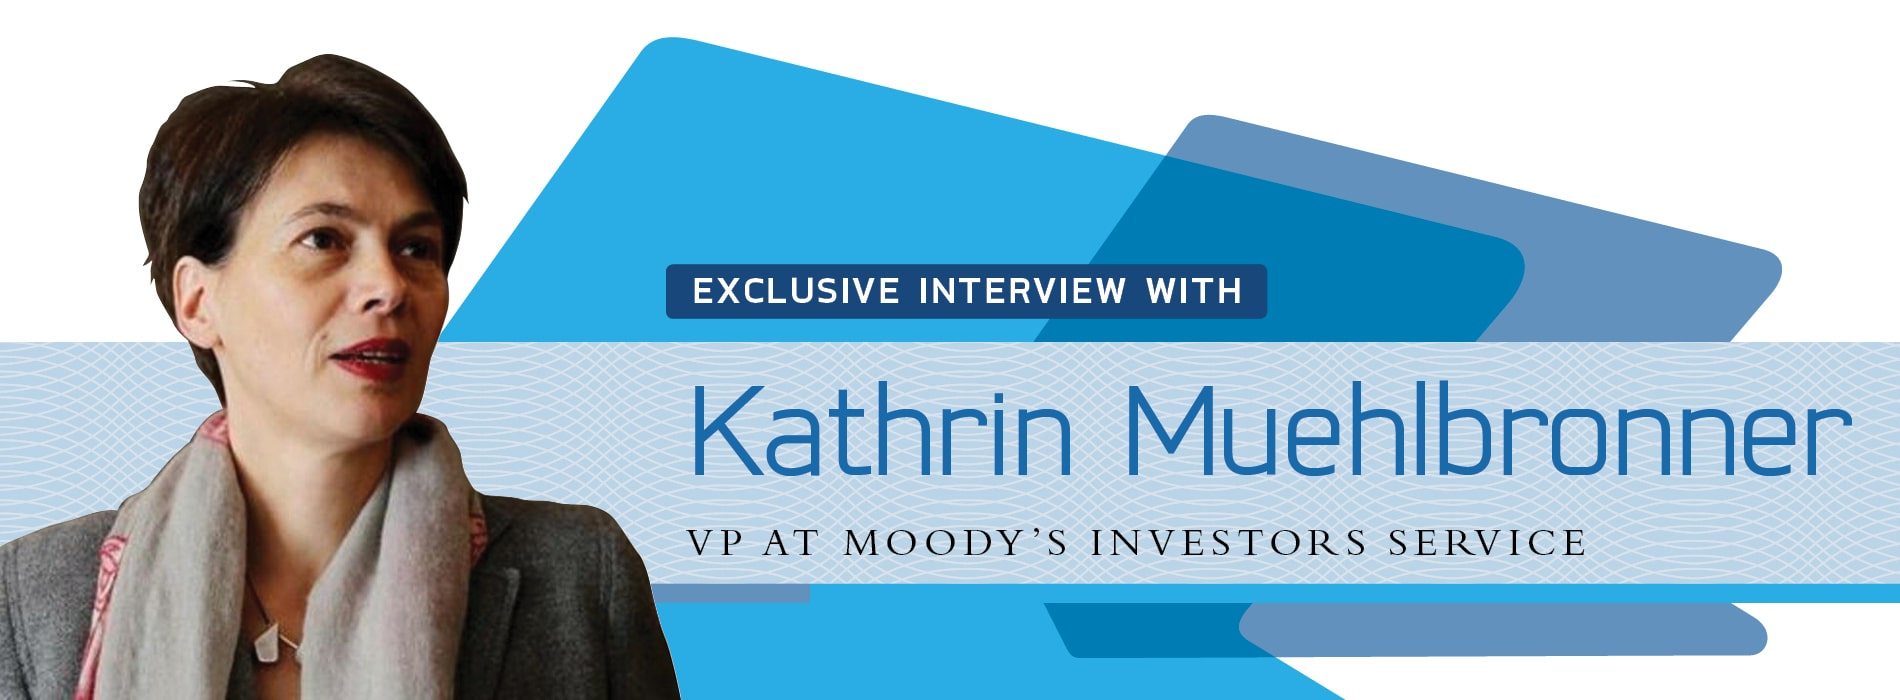 Interview with Kathrin Muehlbronner,VP at Moody's Investors Service